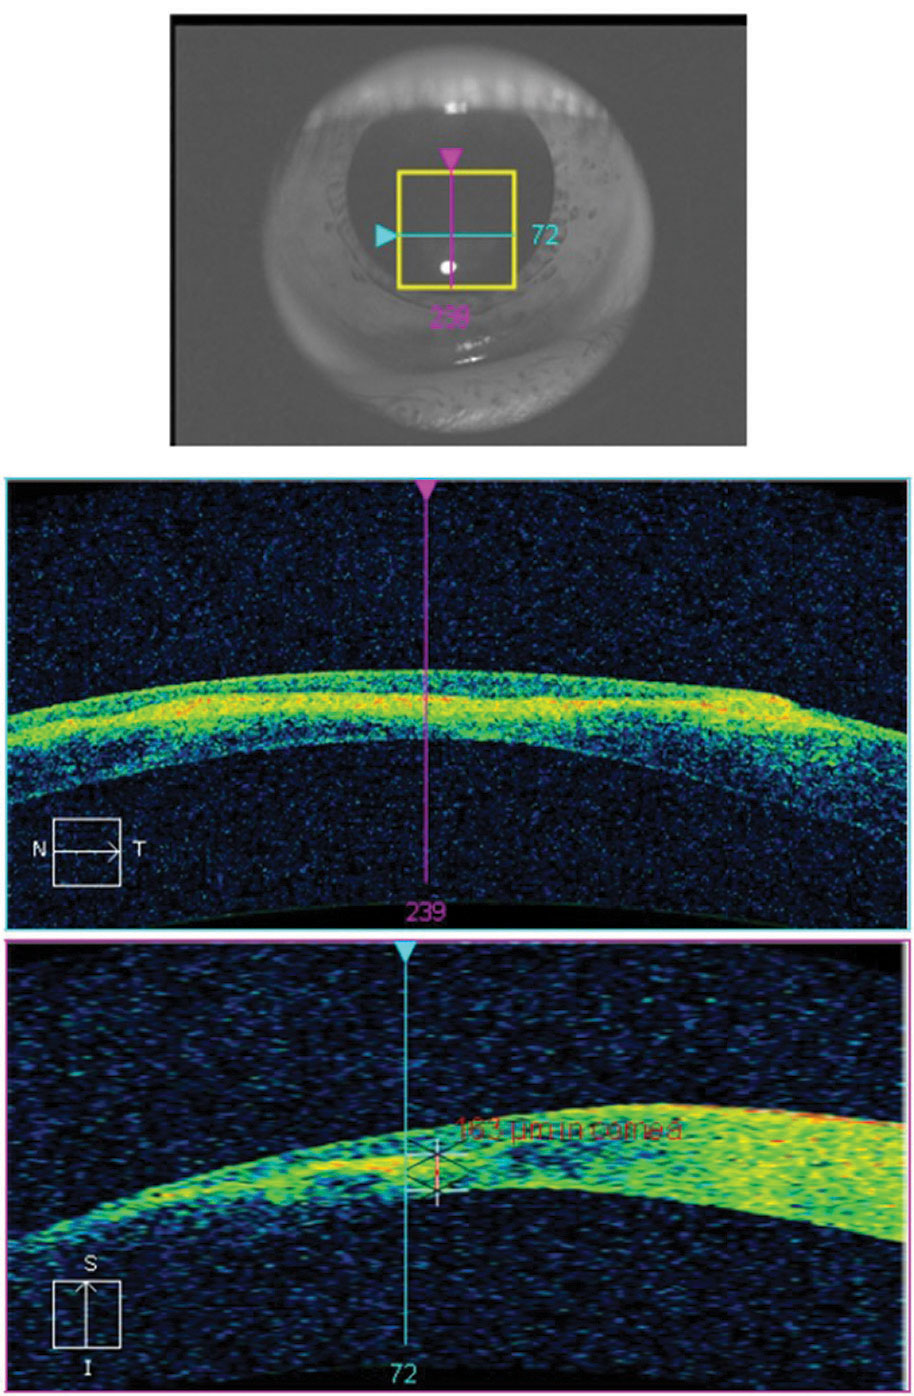 Fig. 11. This AS-OCT scan of a 28-year-old Asian patient with advanced keratoconus and moderate-to-severe pain demonstrates intact endothelial and posterior stromal layers while showing increased reflectivity associated with stromal scarring. In this case, AS-OCT confirmed an intact endothelium and Descemet's membrane. As an added advantage, corneal thickness was measured accurately at the thinnest location using the caliper tool, thereby providing a reliable baseline for follow-up comparison. In light of the anatomical state of the cornea, the patient's symptoms were attributed to epithelial disruption overlying the apex of corneal steepening.